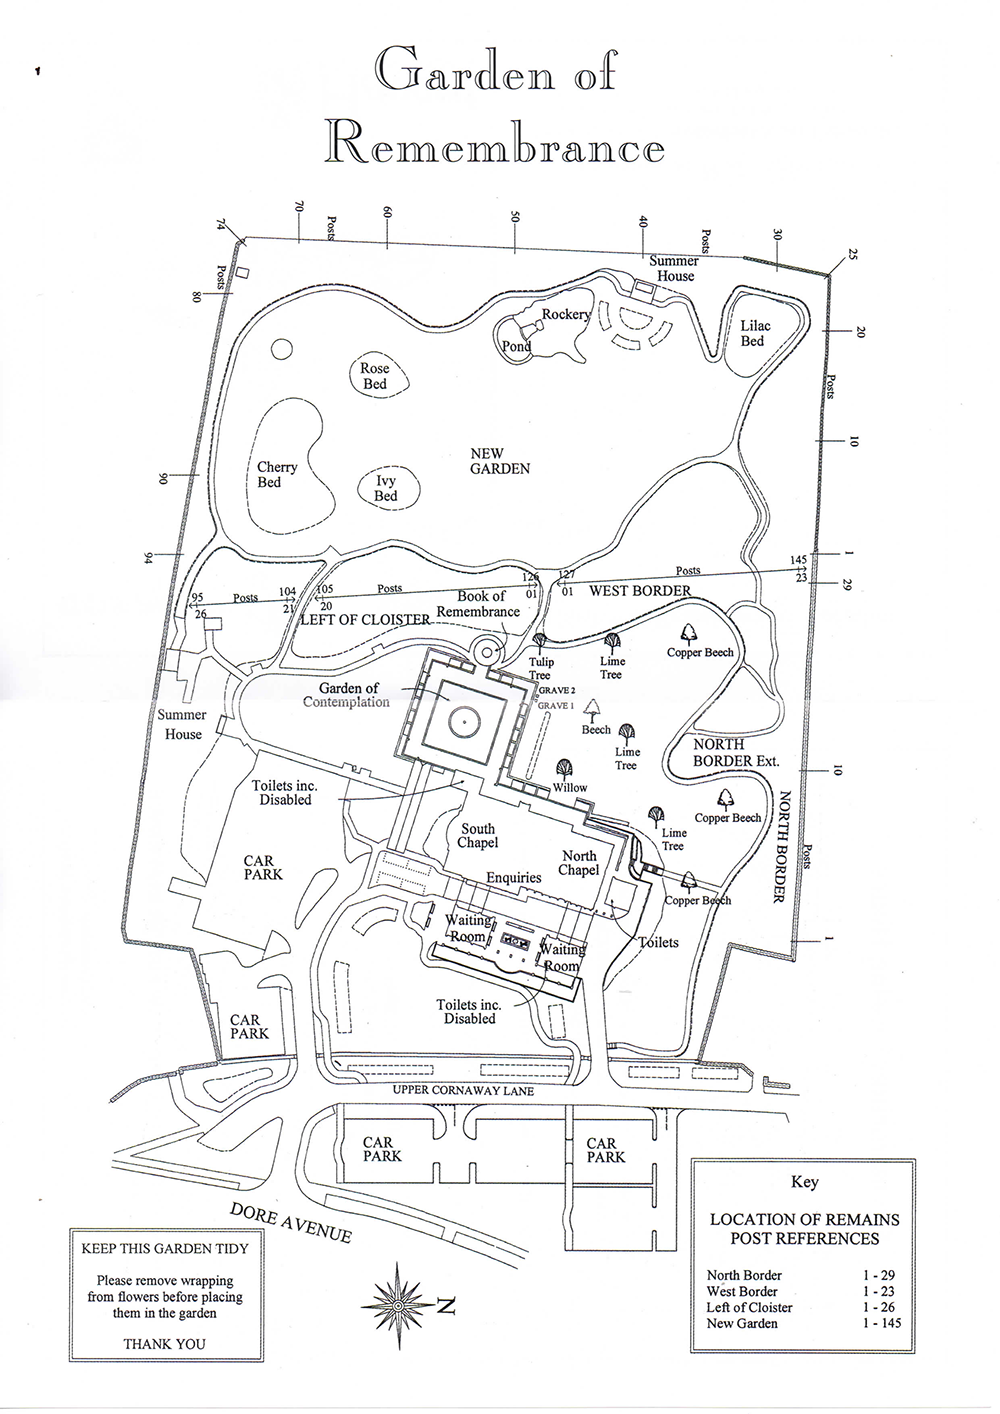 A line drawing map showing the layout of the Garden of Remembrance